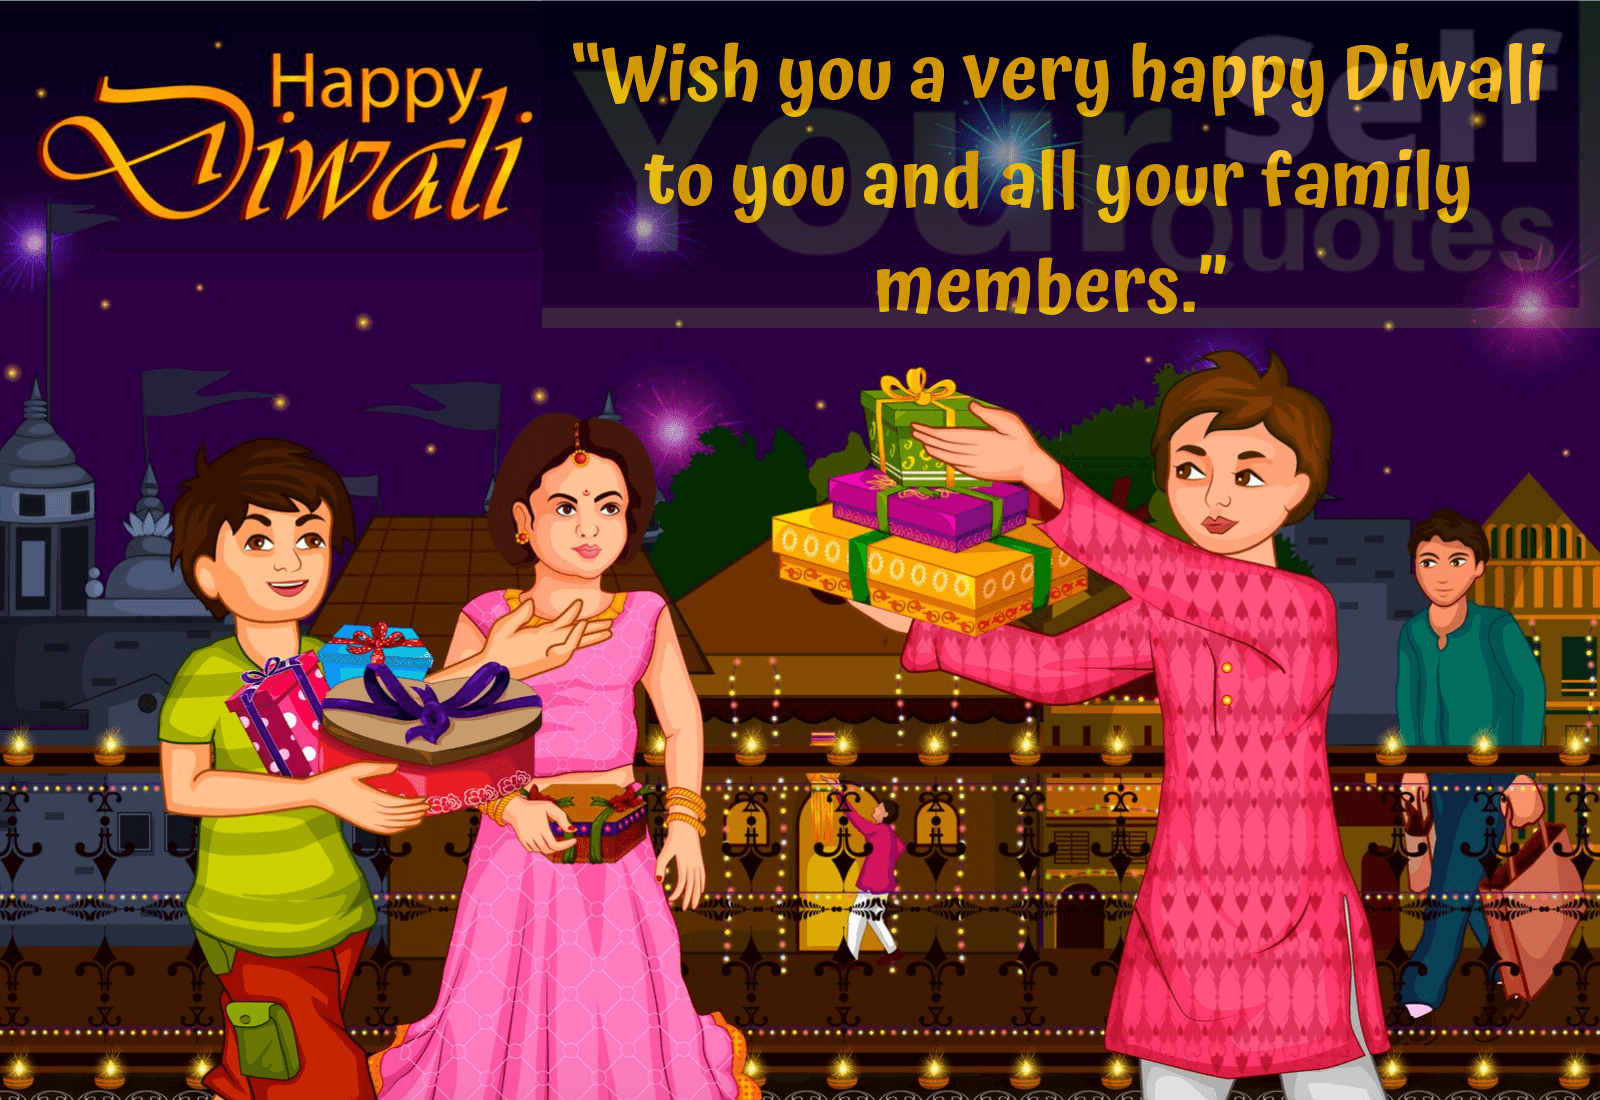 Happy-Diwali-Wishes-Images-For-Family